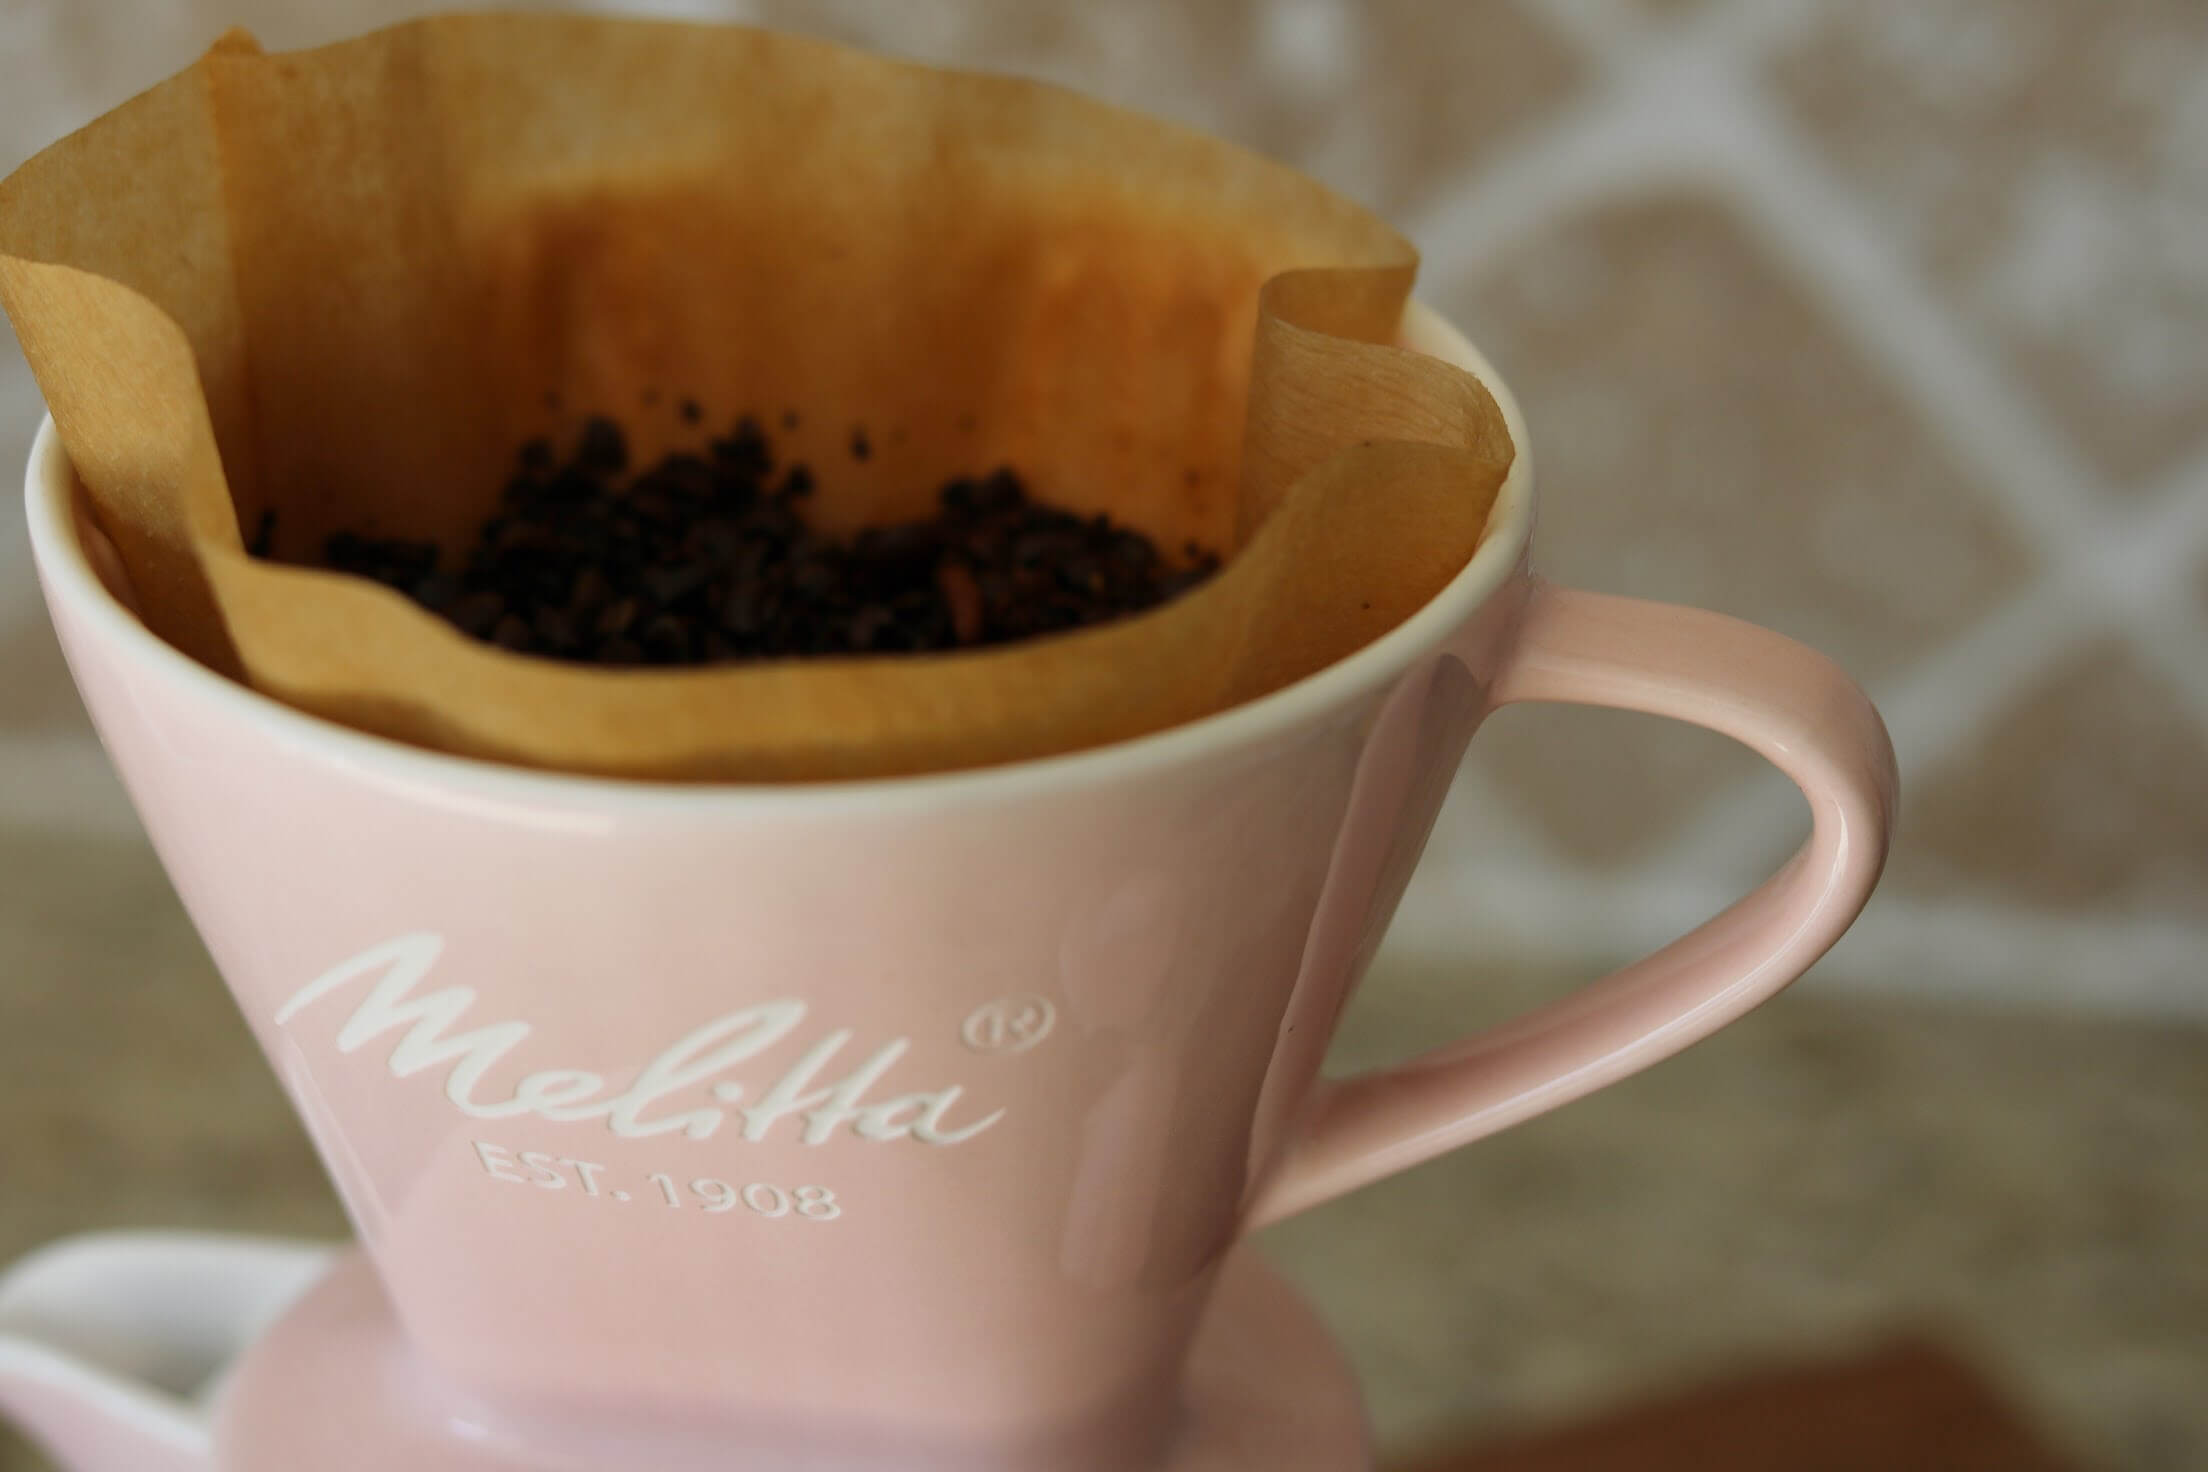 Melitta Pour-Over kit instructions